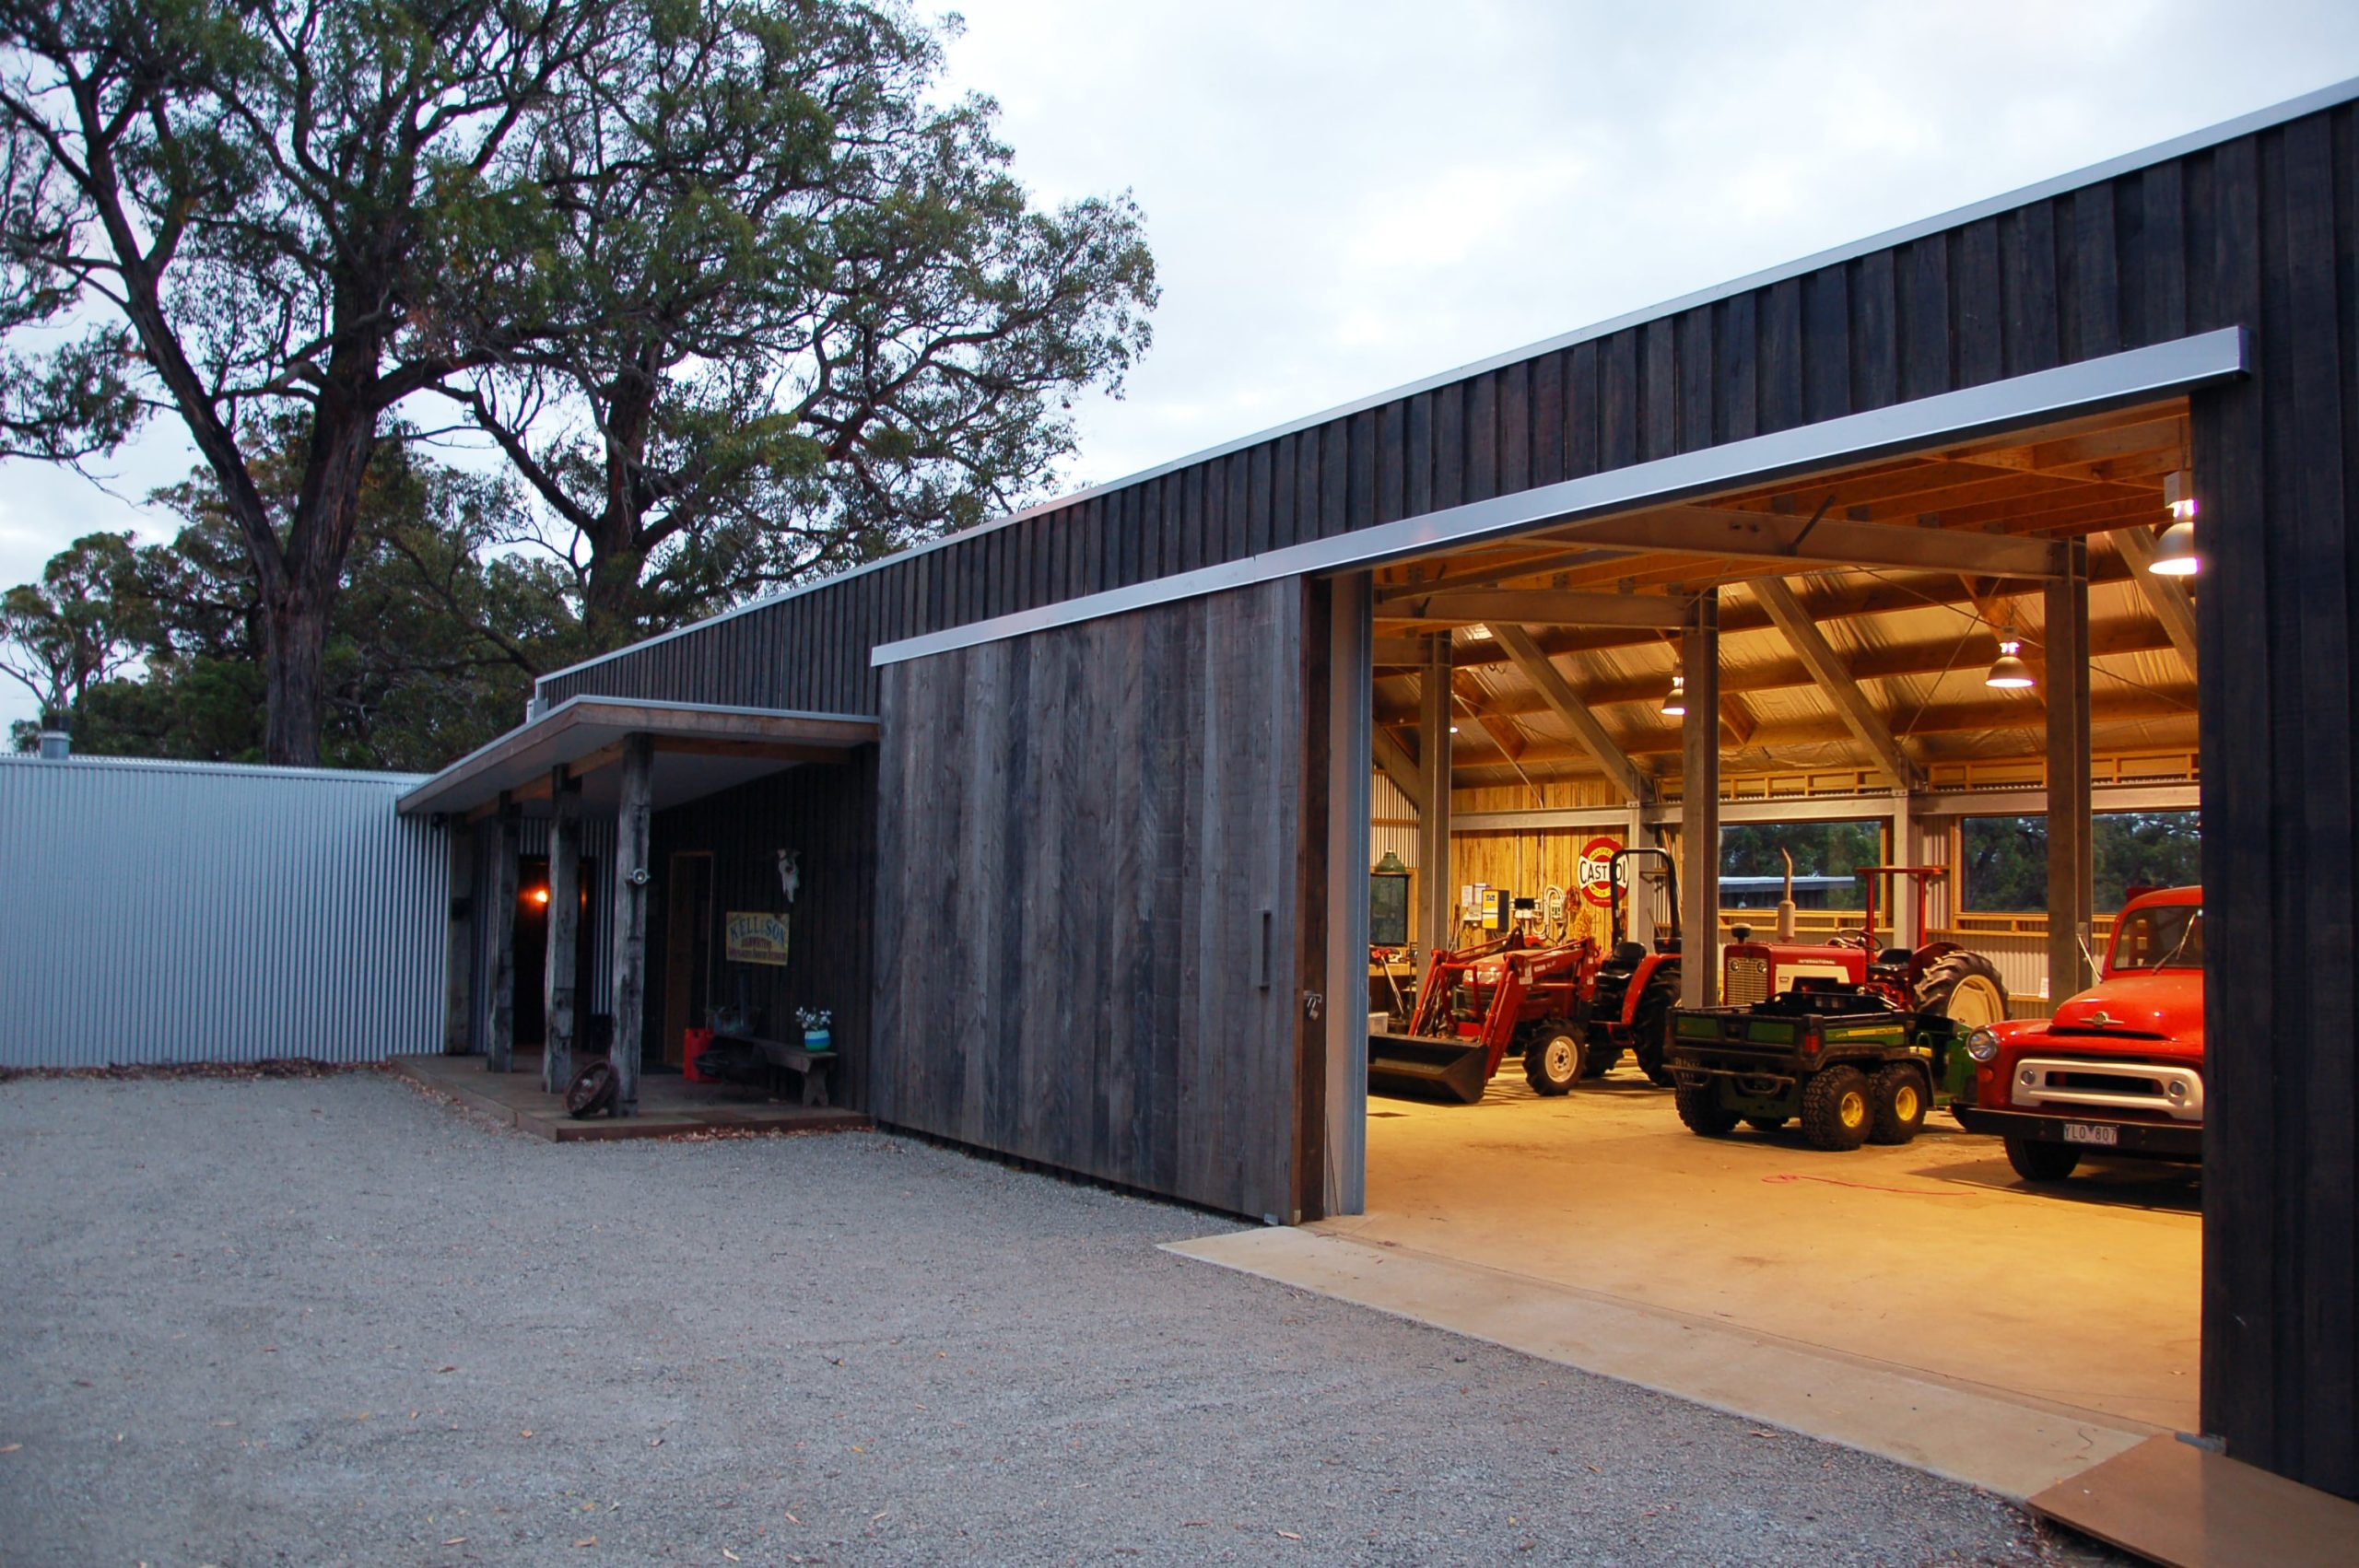 This close look at the large shed and garage showcases its beautiful wooden ceiling with exposed beams connected to pillars that separate the parking spaces for the vehicles.